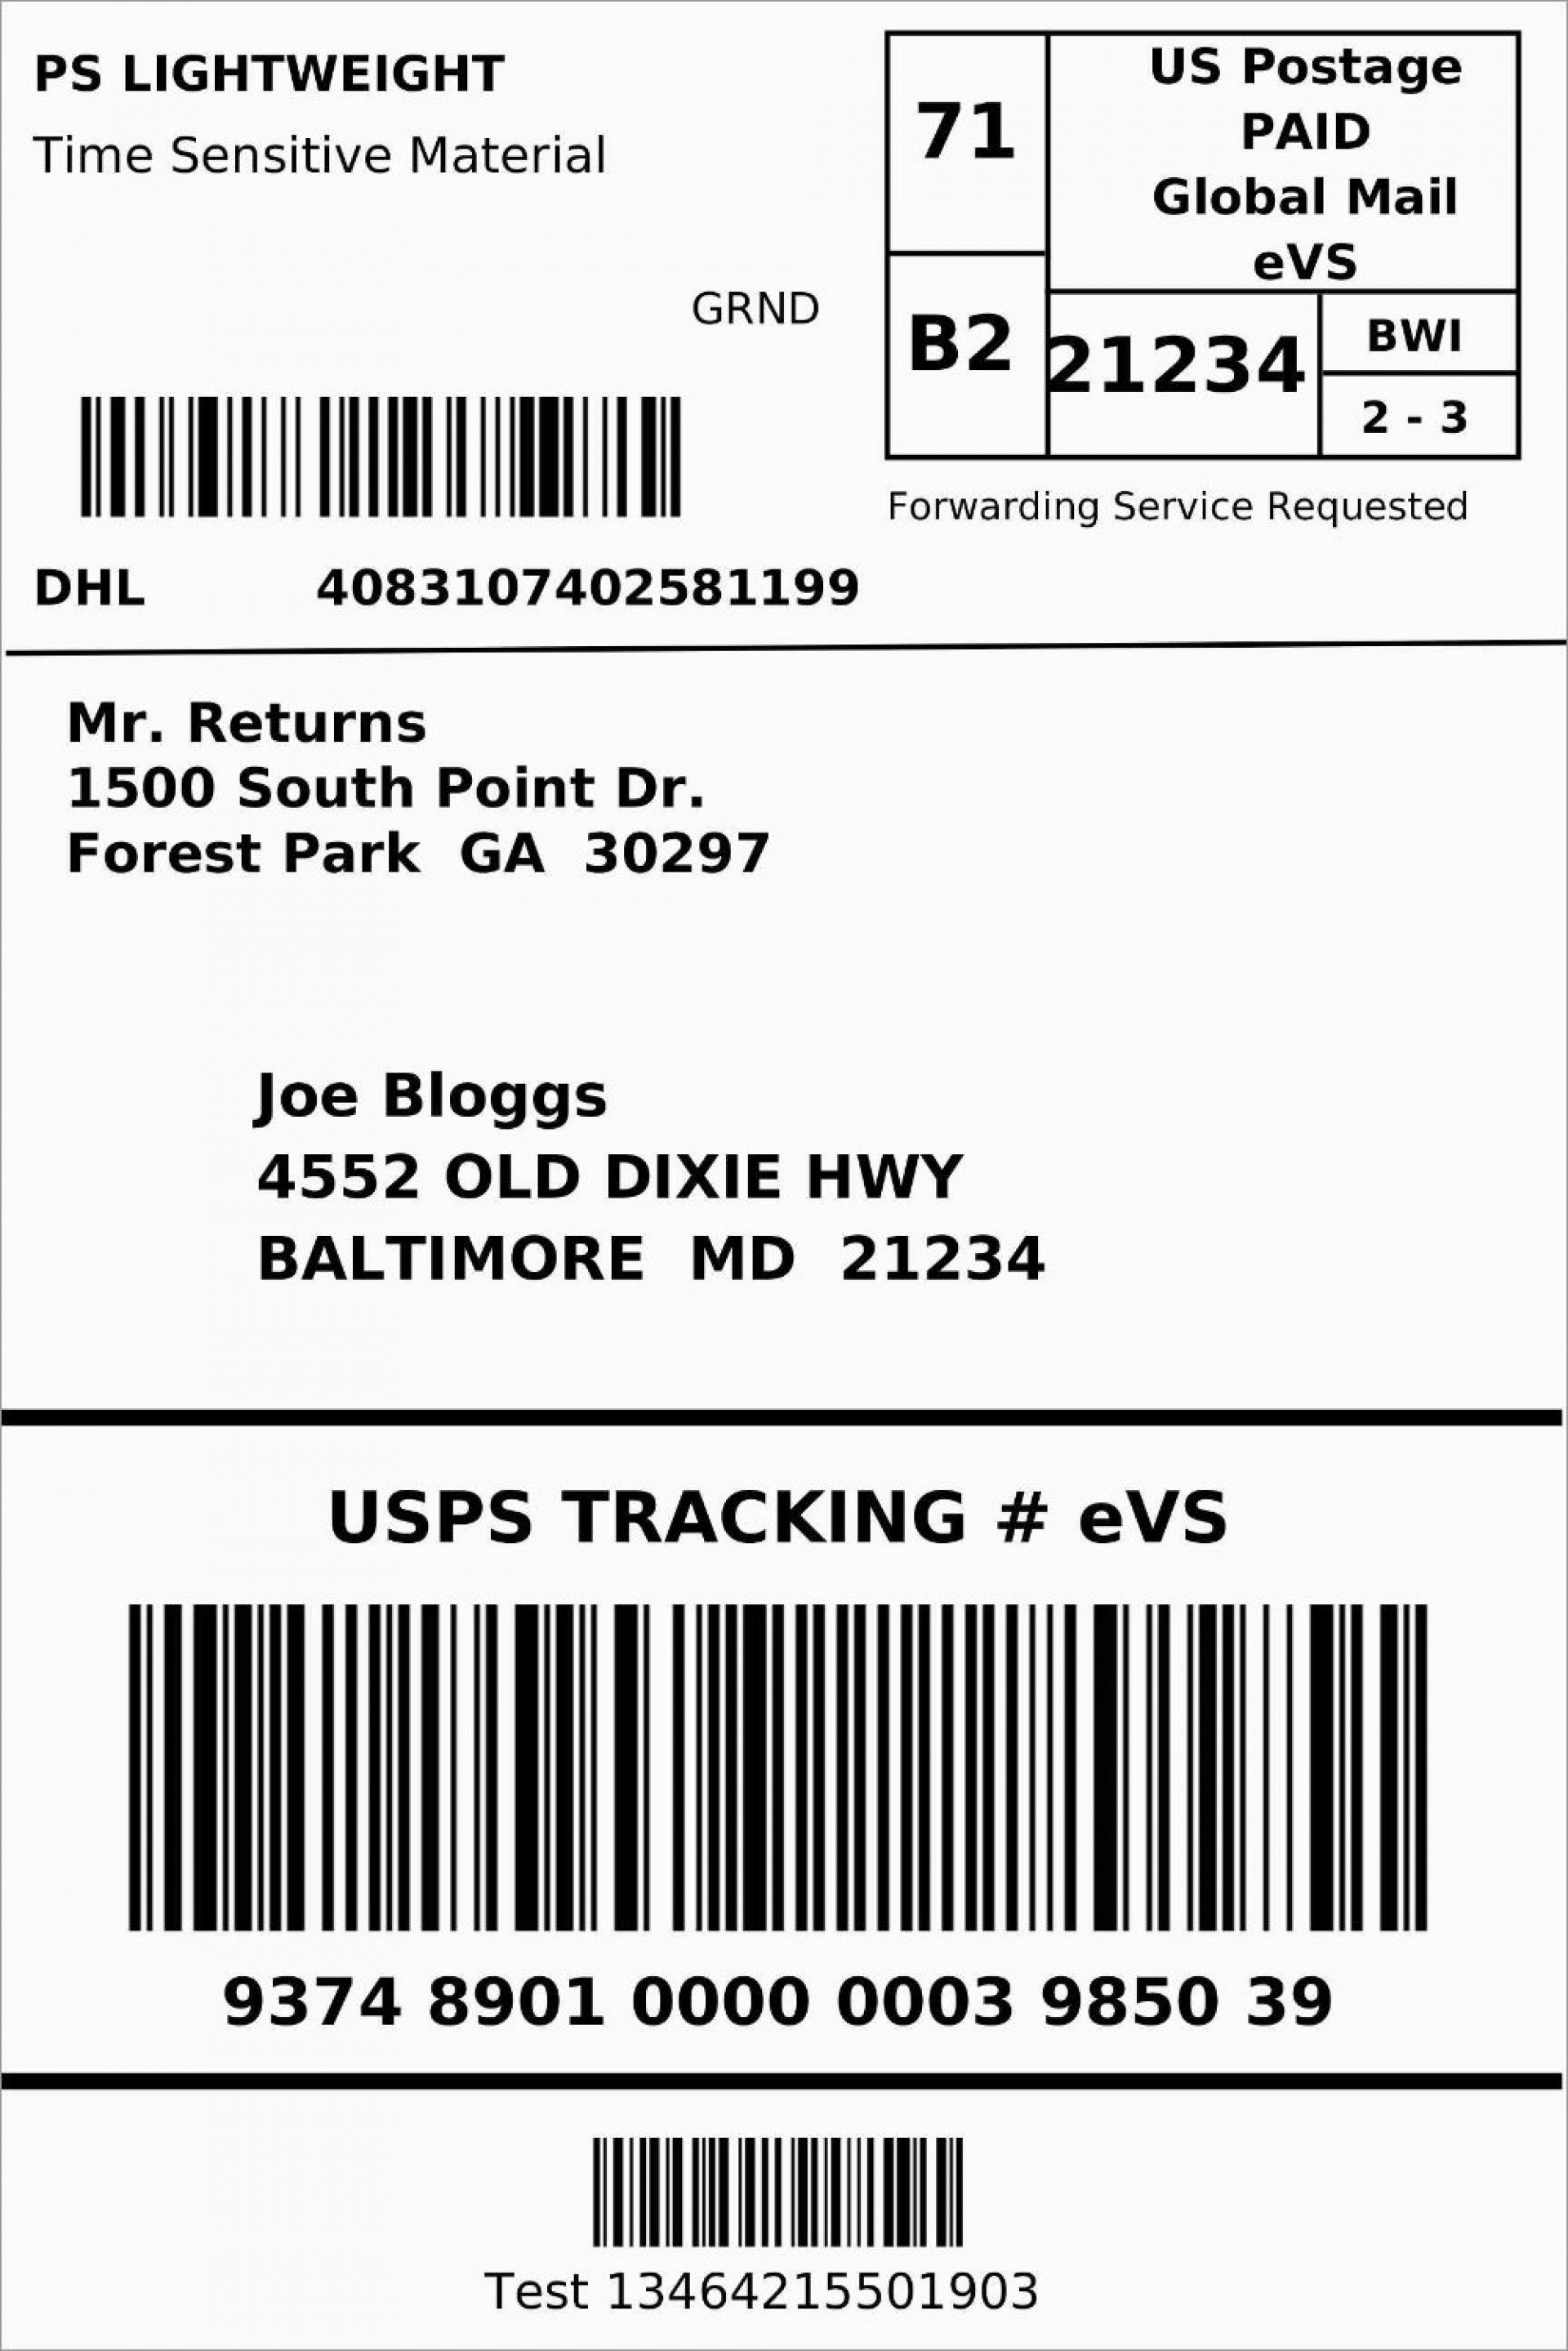 006 Unusual Blank Shipping Label Template High Def  Word Free Printable1920